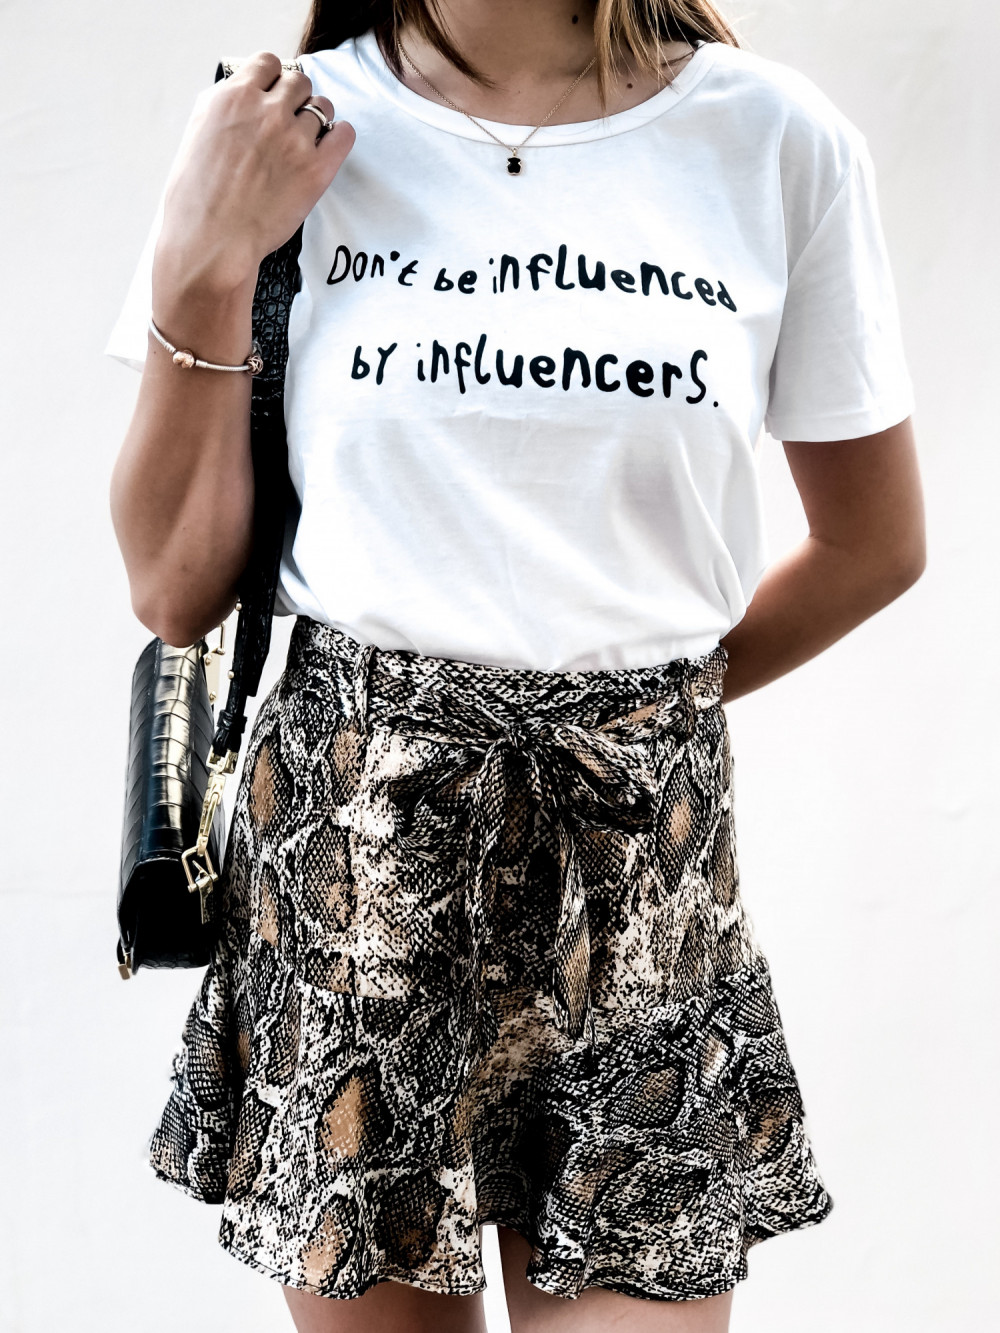 T-SHIRT #INFLUENCER